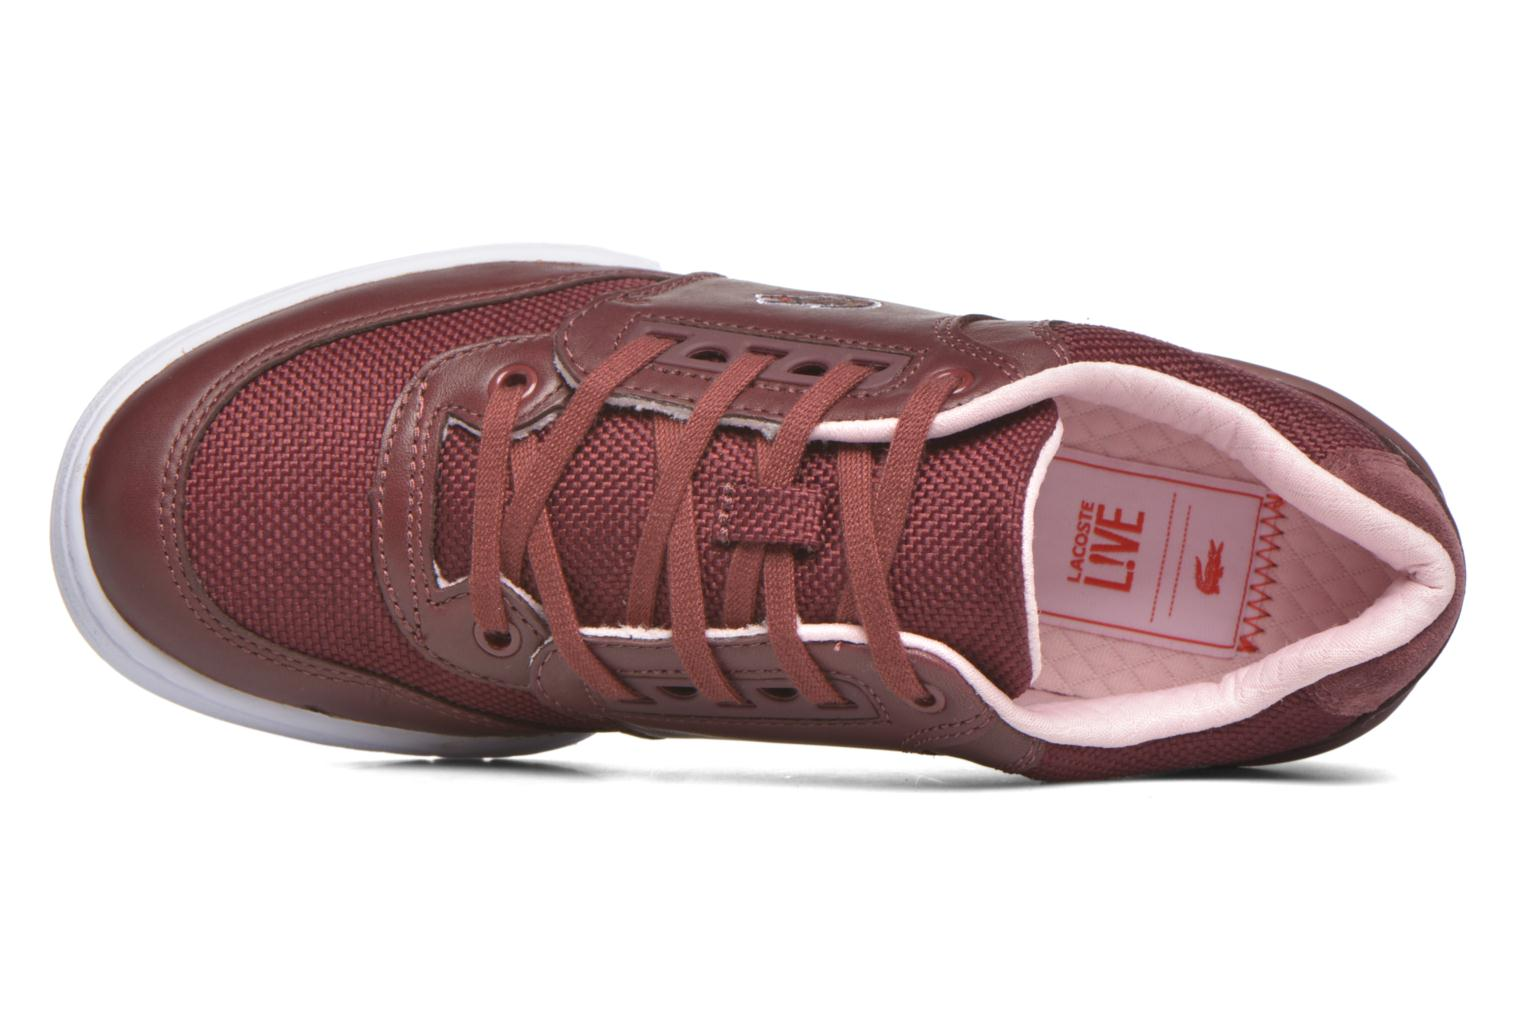 Indiana 416 1 C Burgundy/Light Pink